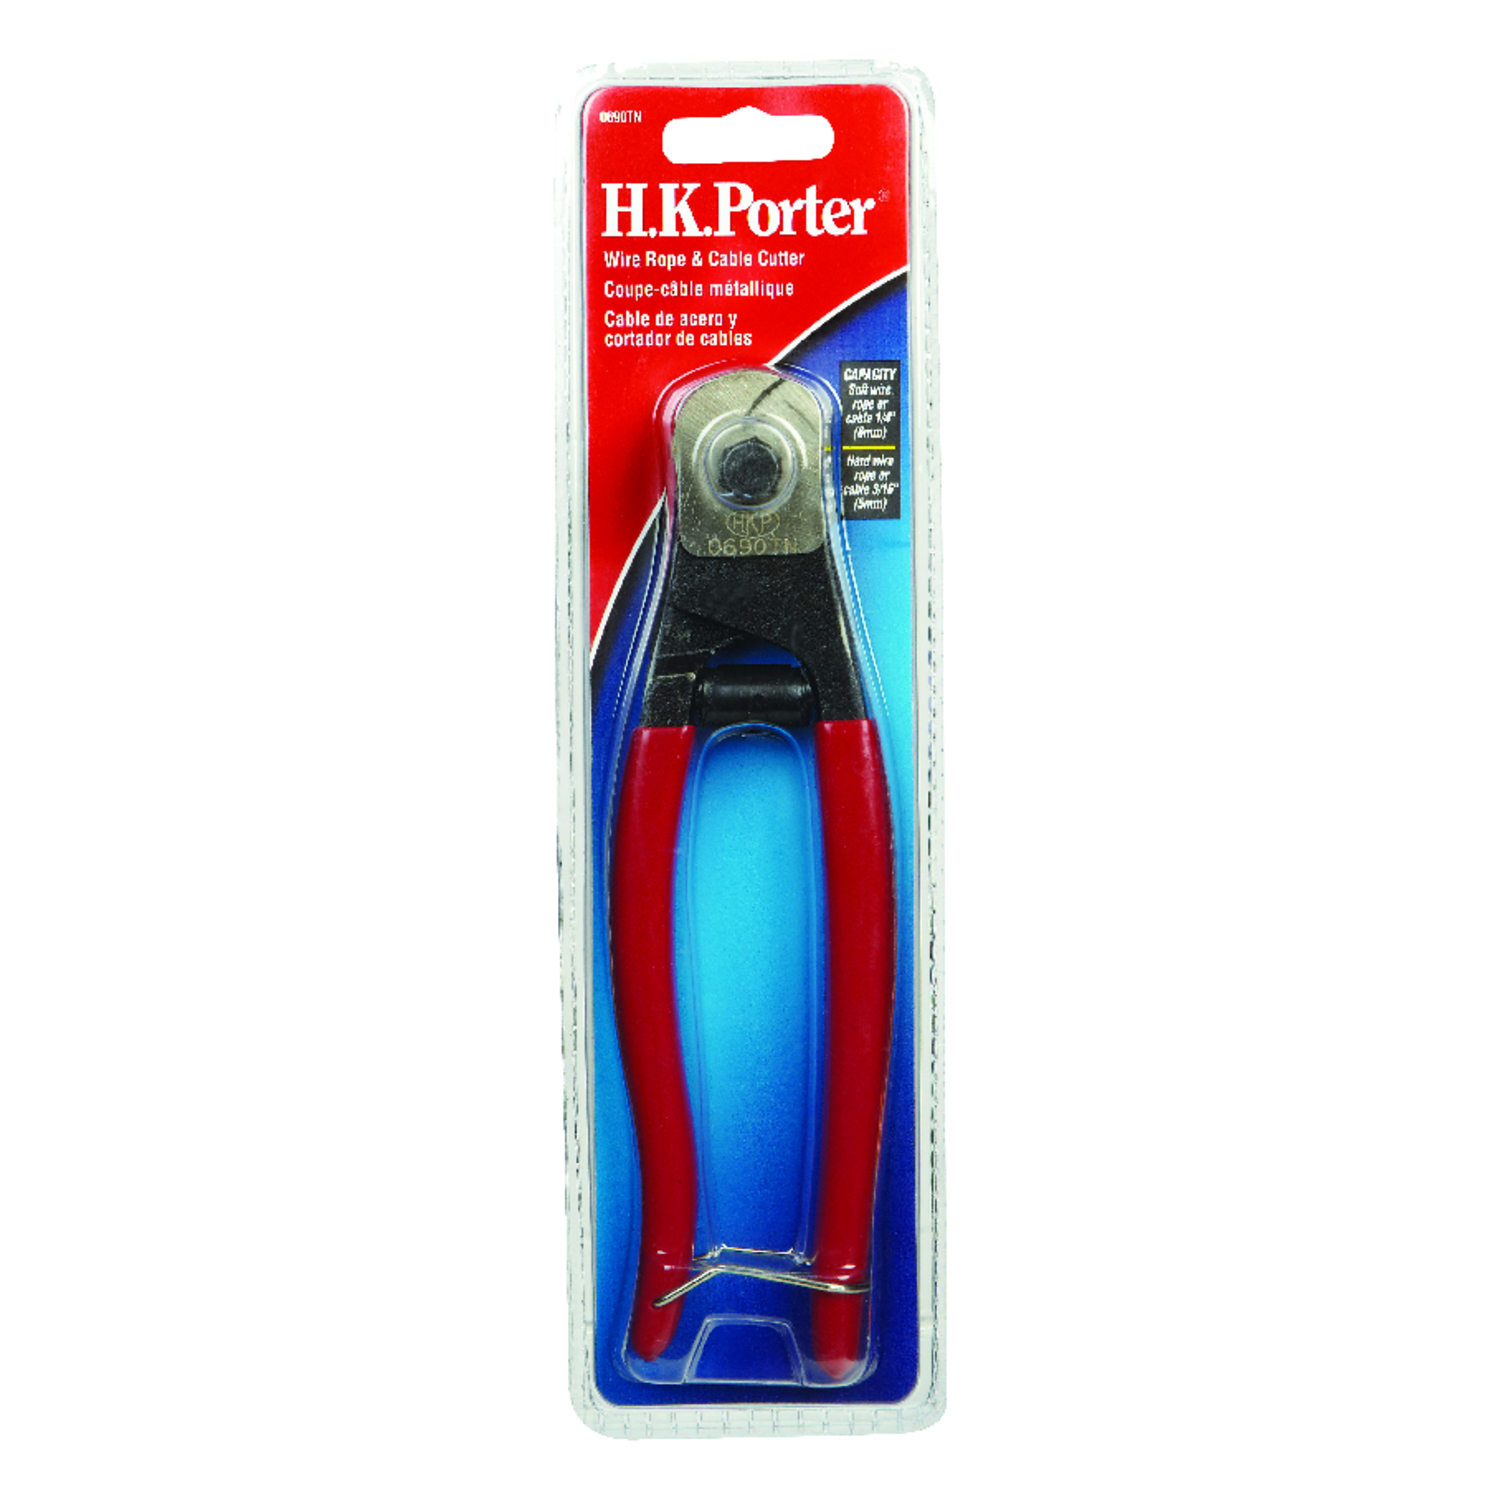 H.K. Porter  7-1/2 in. L Cable Cutter  3/16  Red